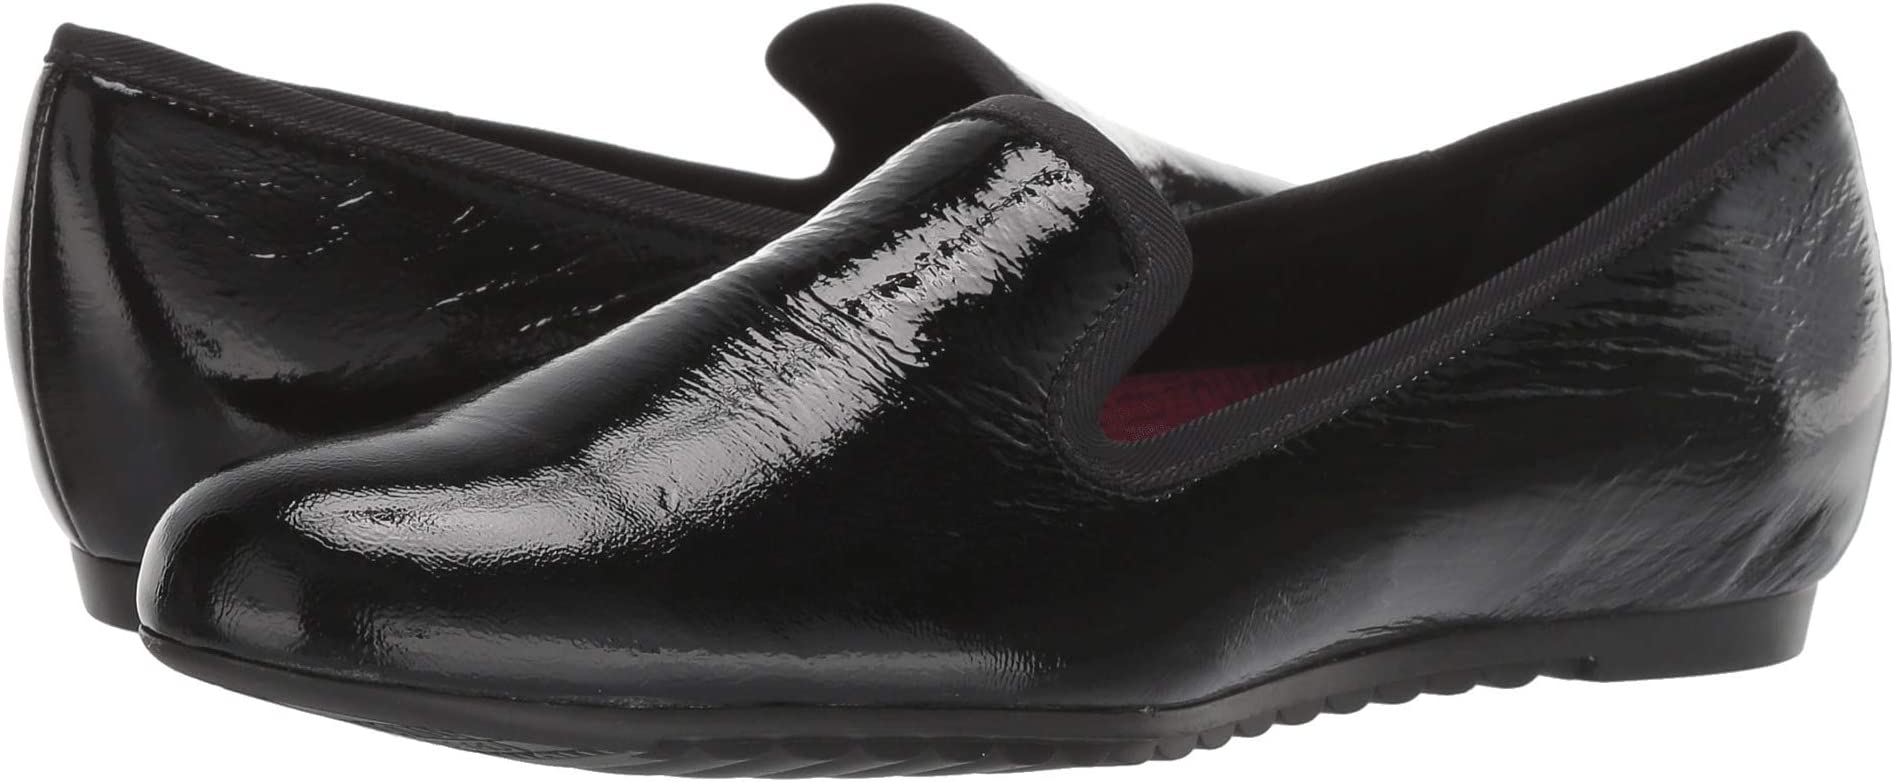 TC-3-Loafers-2020-04-06